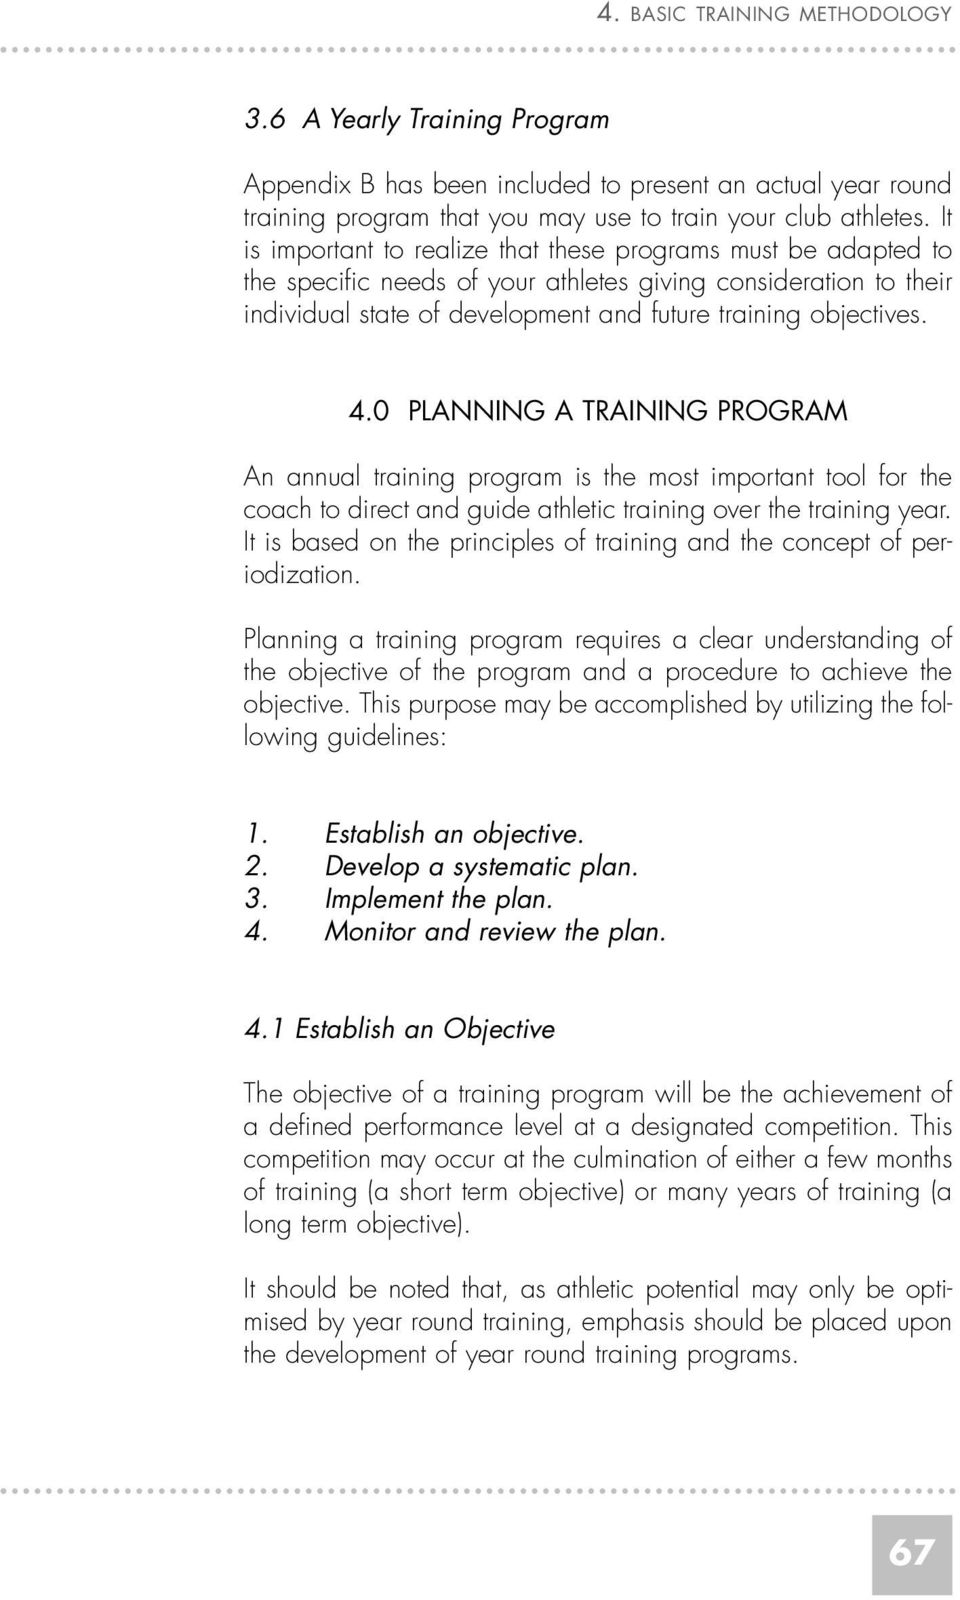 0 PLANNING A TRAINING PROGRAM An annual training program is the most important tool for the coach to direct and guide athletic training over the training year.